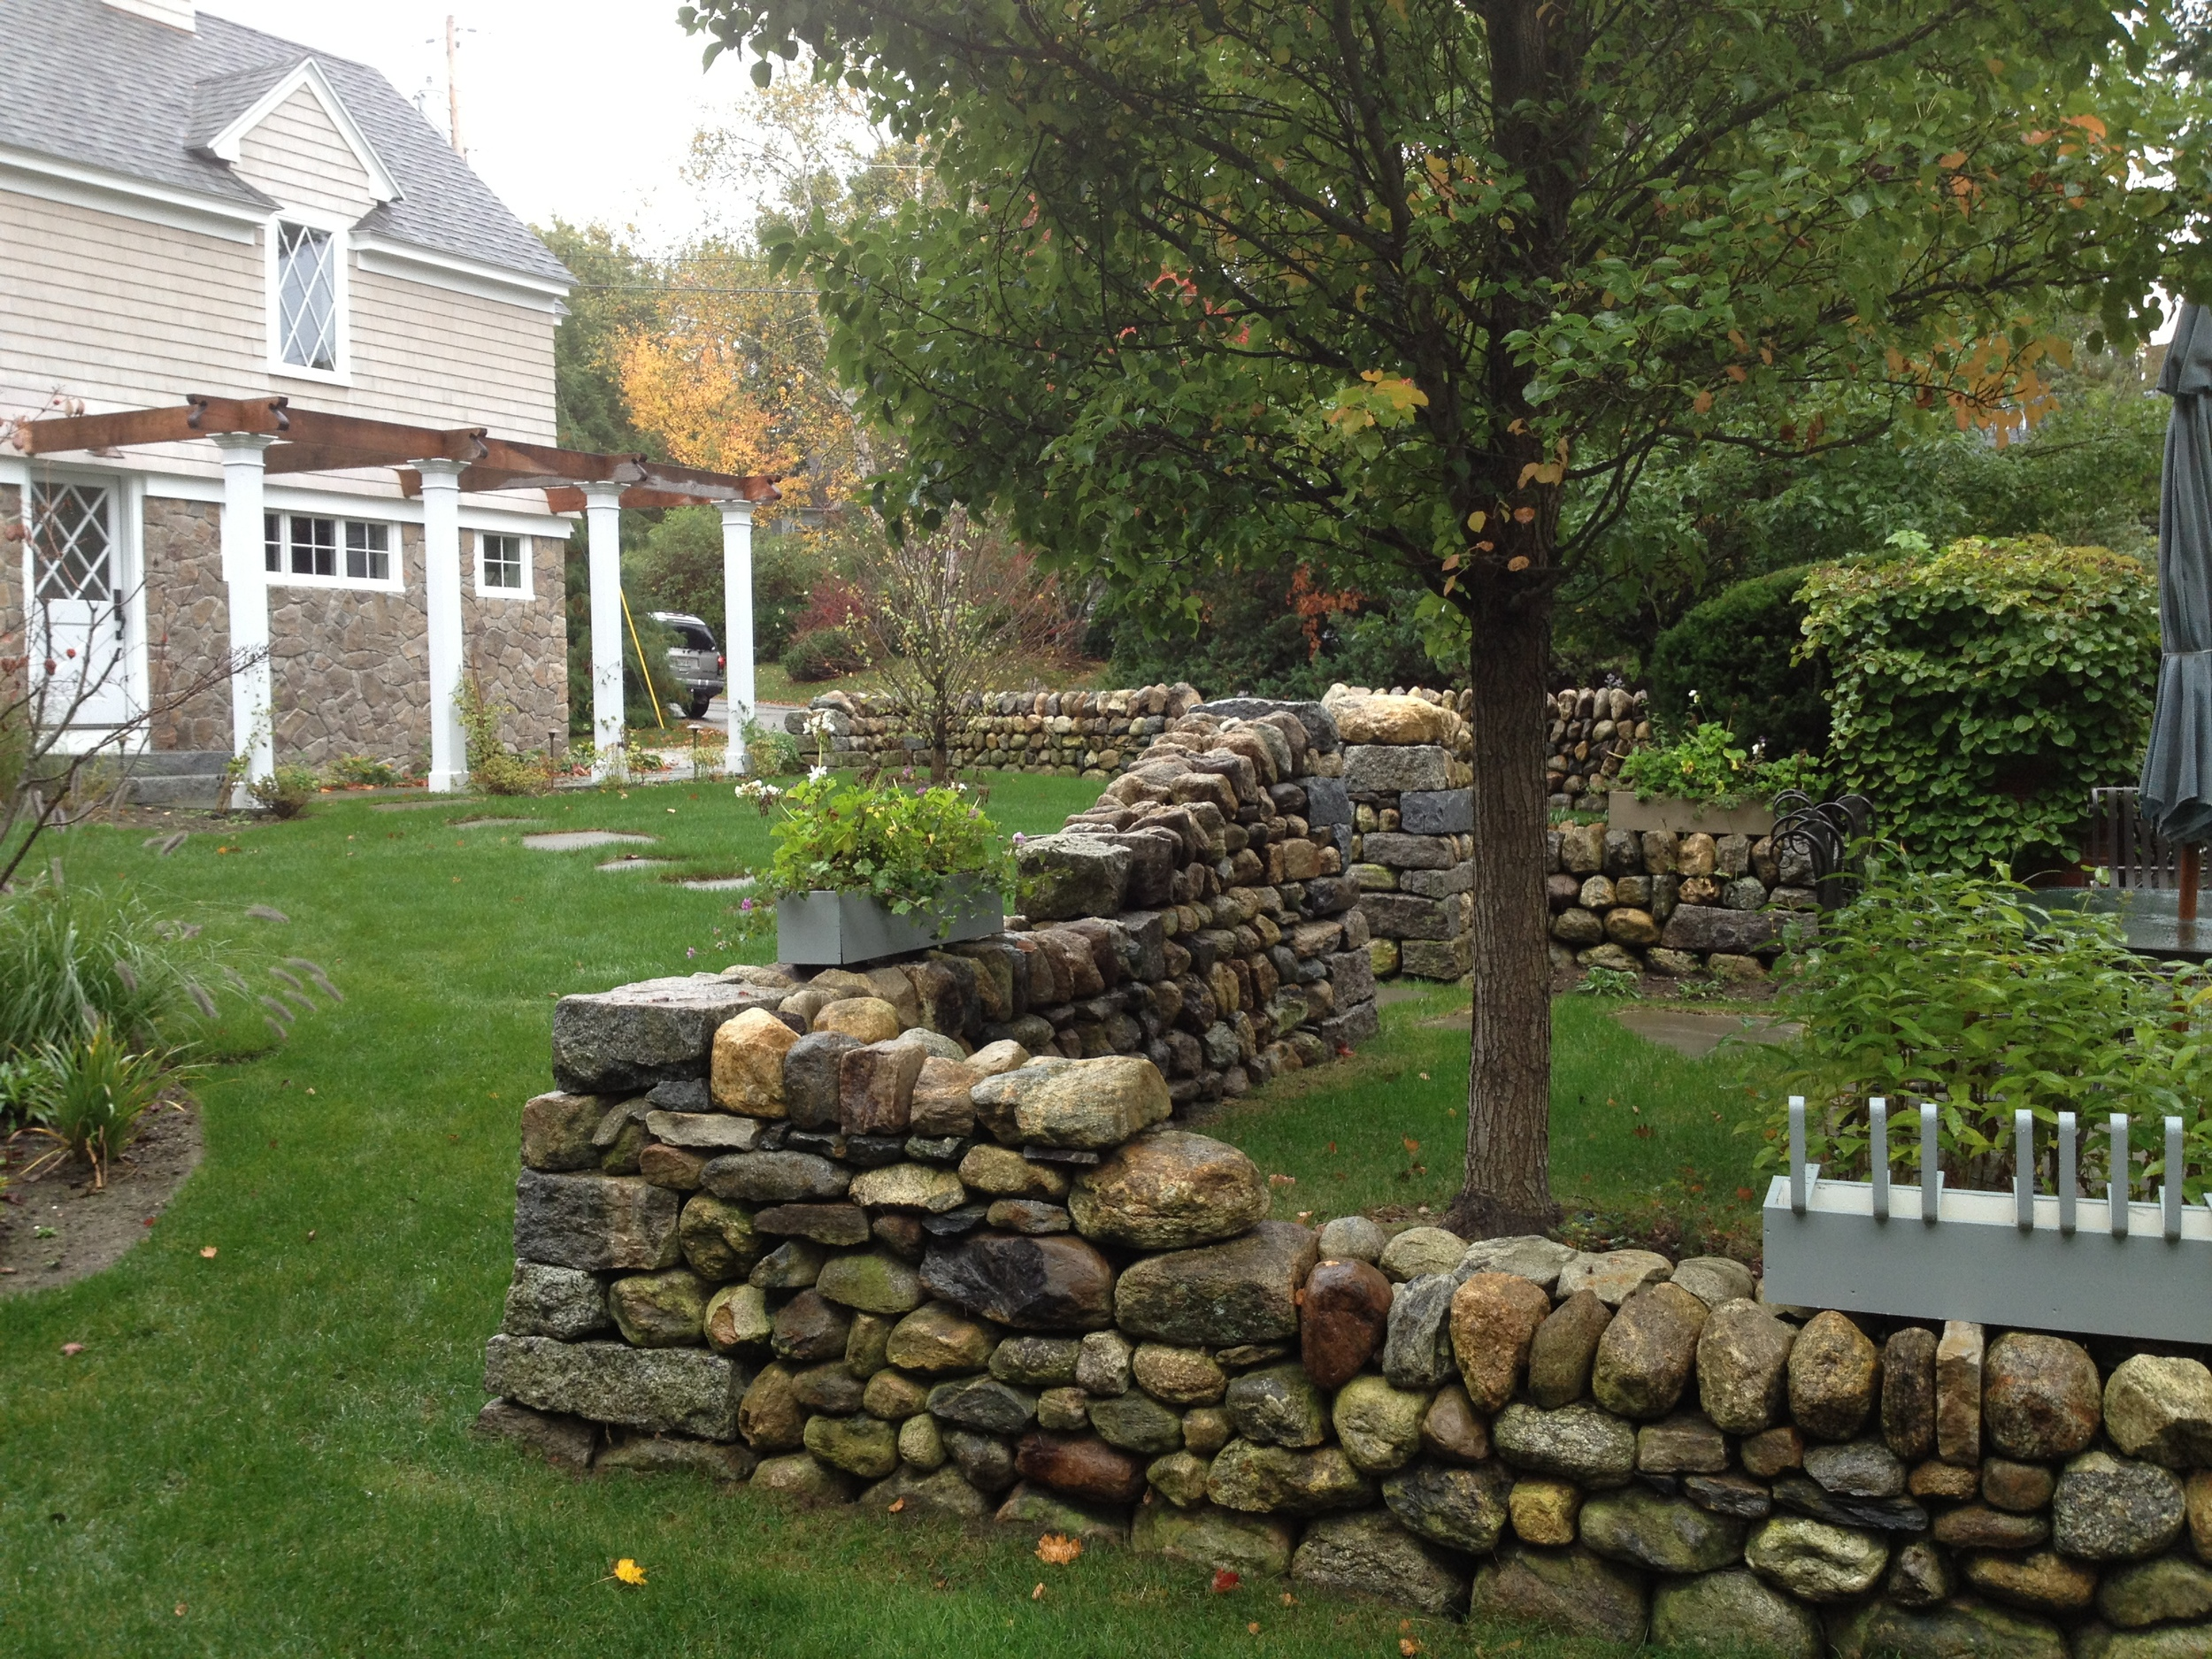 A refurbished drystone wall adds the historic feel of this gardenscape